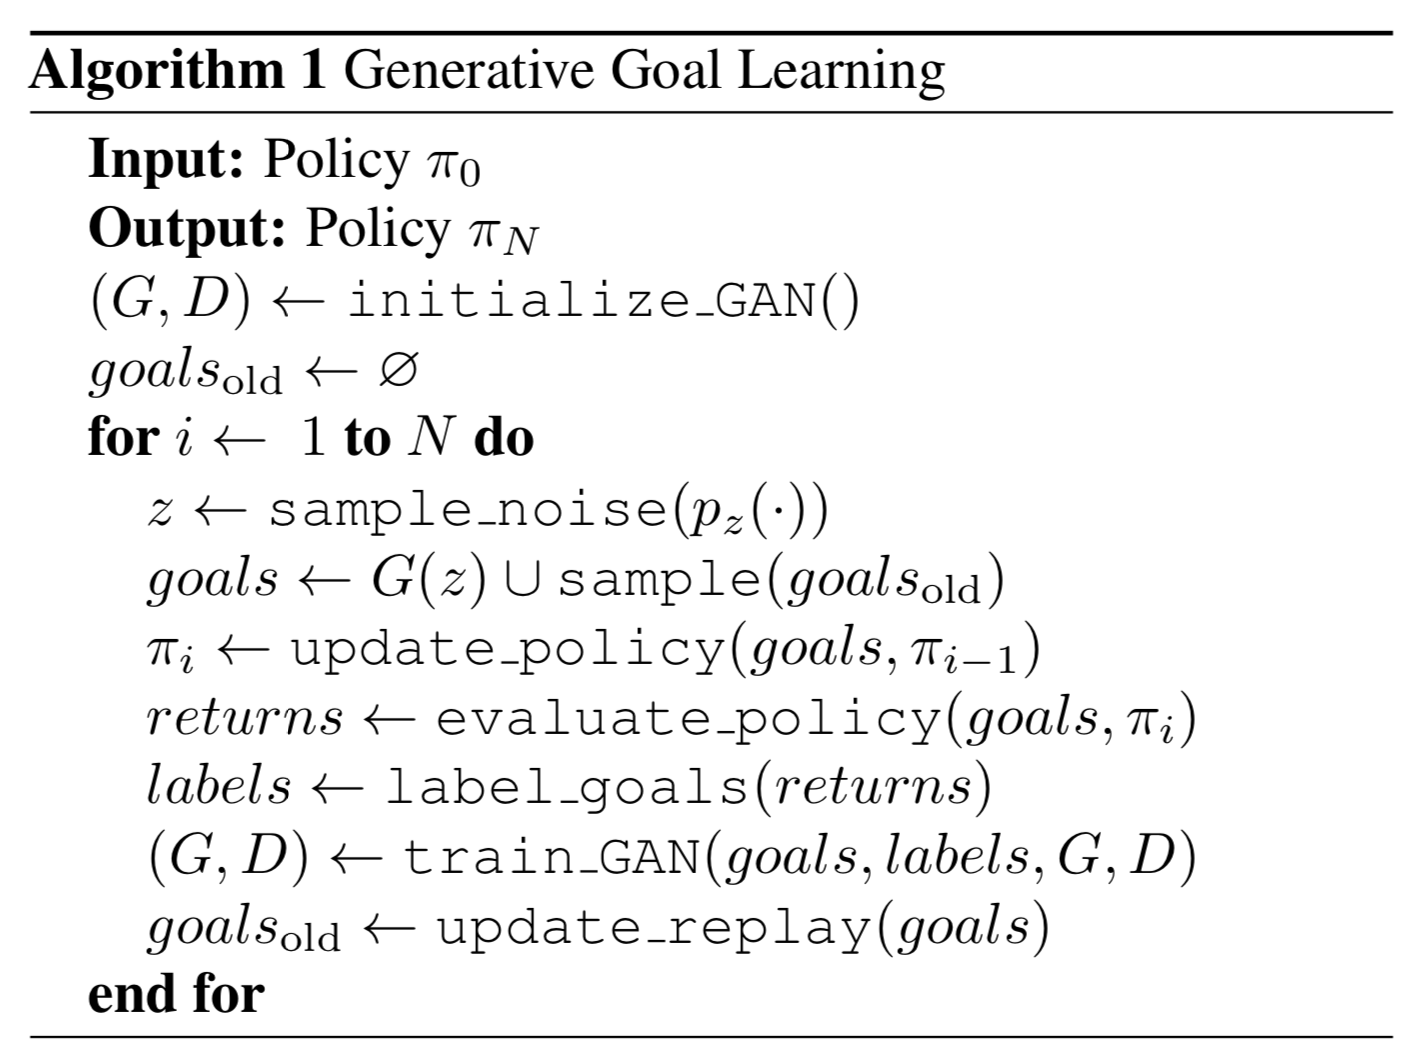 Generative goal learning